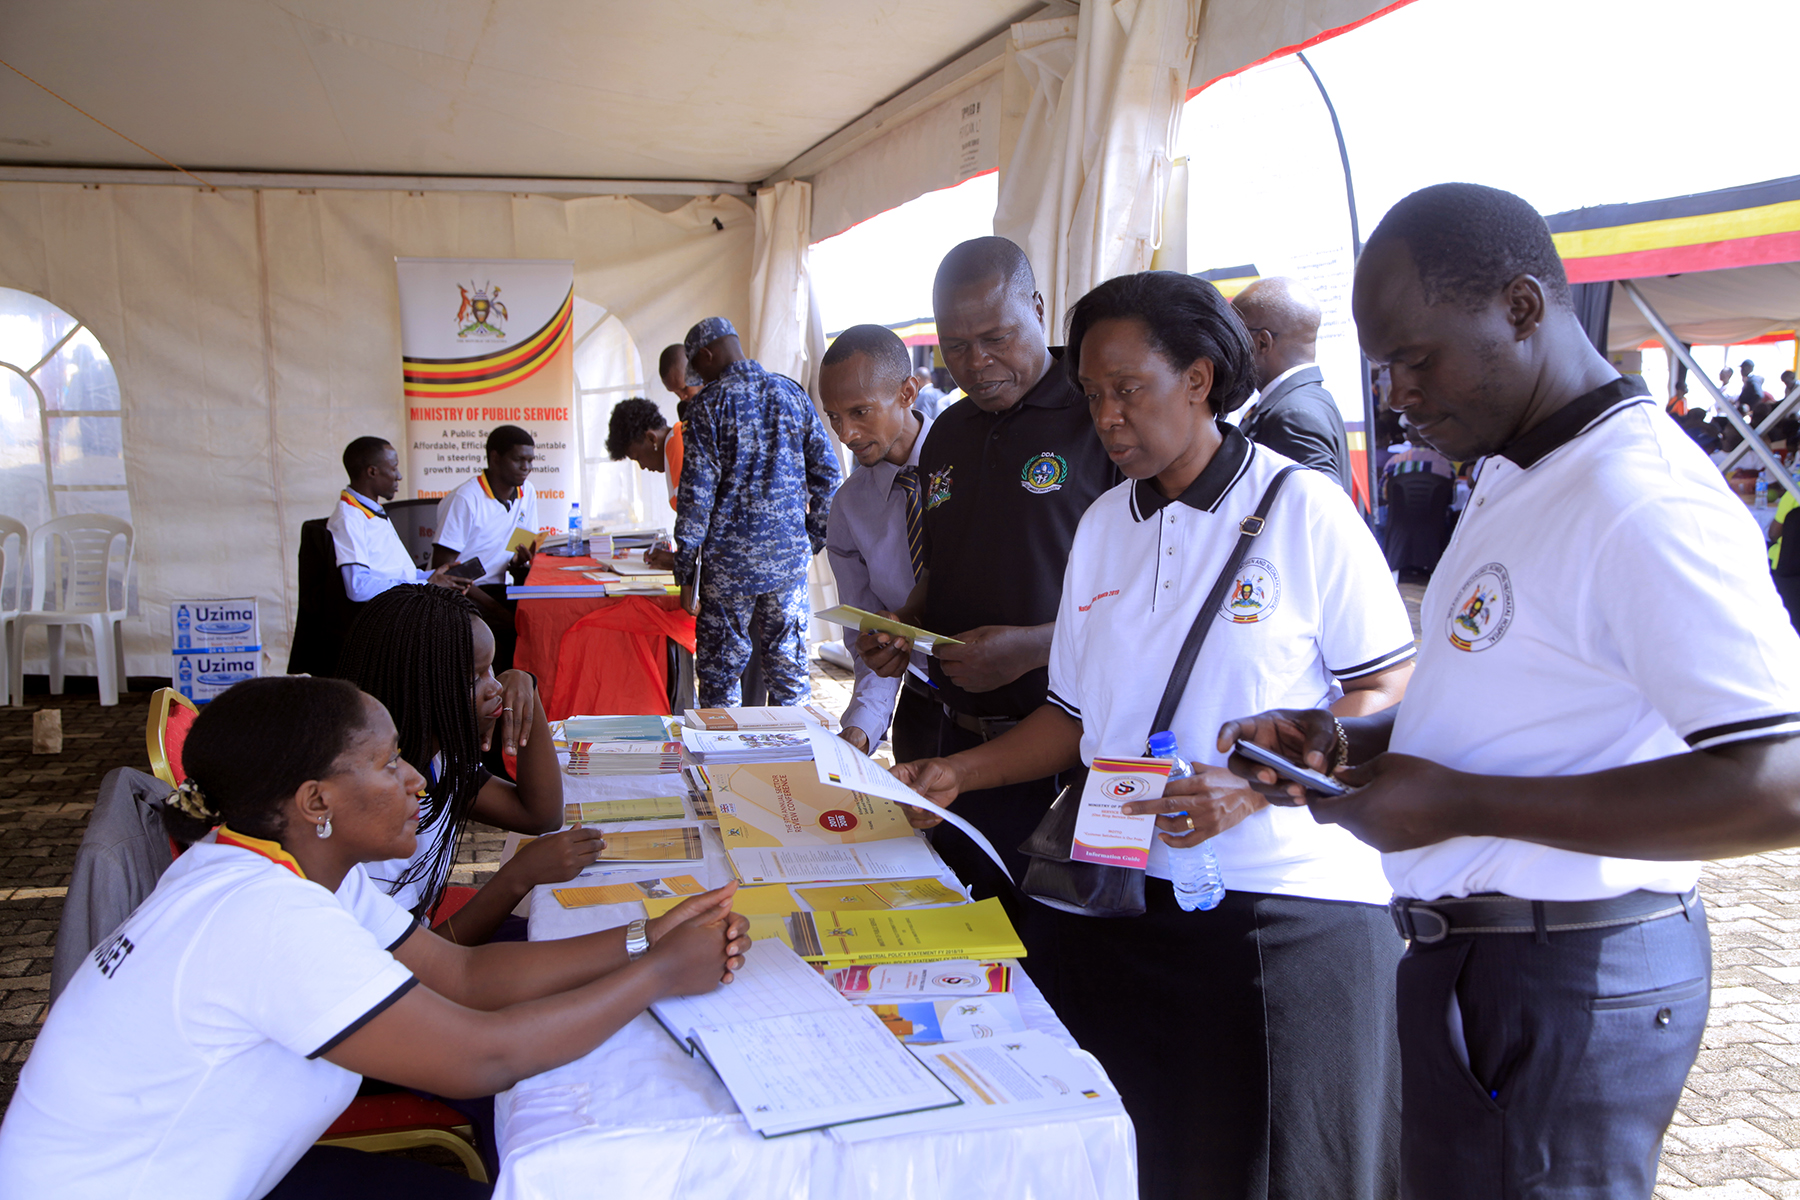 MINISTRY STAFF AT NATIONAL BUDGET MONTH EXHIBITION AT KOLOLO INDEPENDENCE GROUNDS FROM 5TH - 7TH JUNE 2019